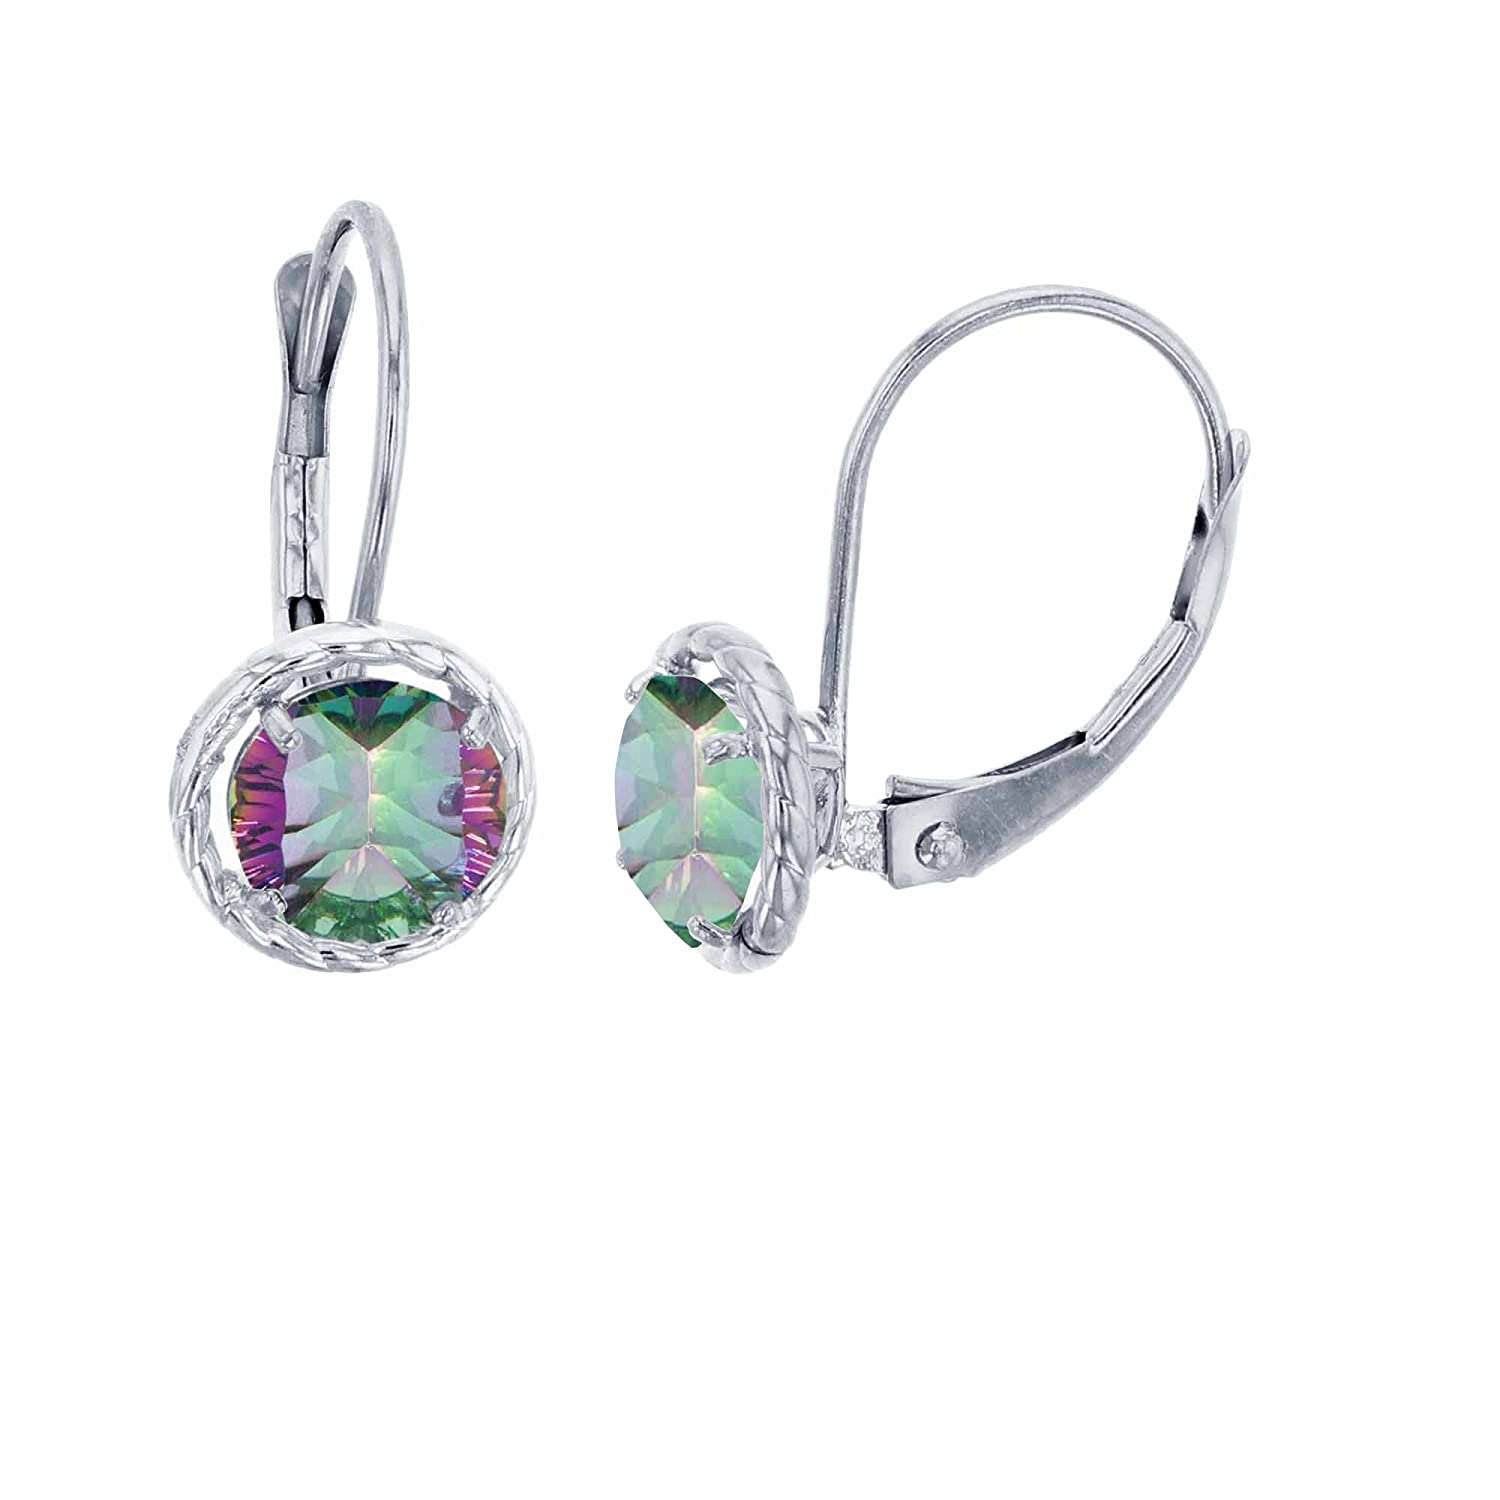 Genuine Gemstone Birthstone Gold Earrings For Women White and Rose Gold 1.25mm Round Created White Sapphire /& 6x4mm Gemstone Bead Frame Drop Leverback Earrings Solid 14K Yellow